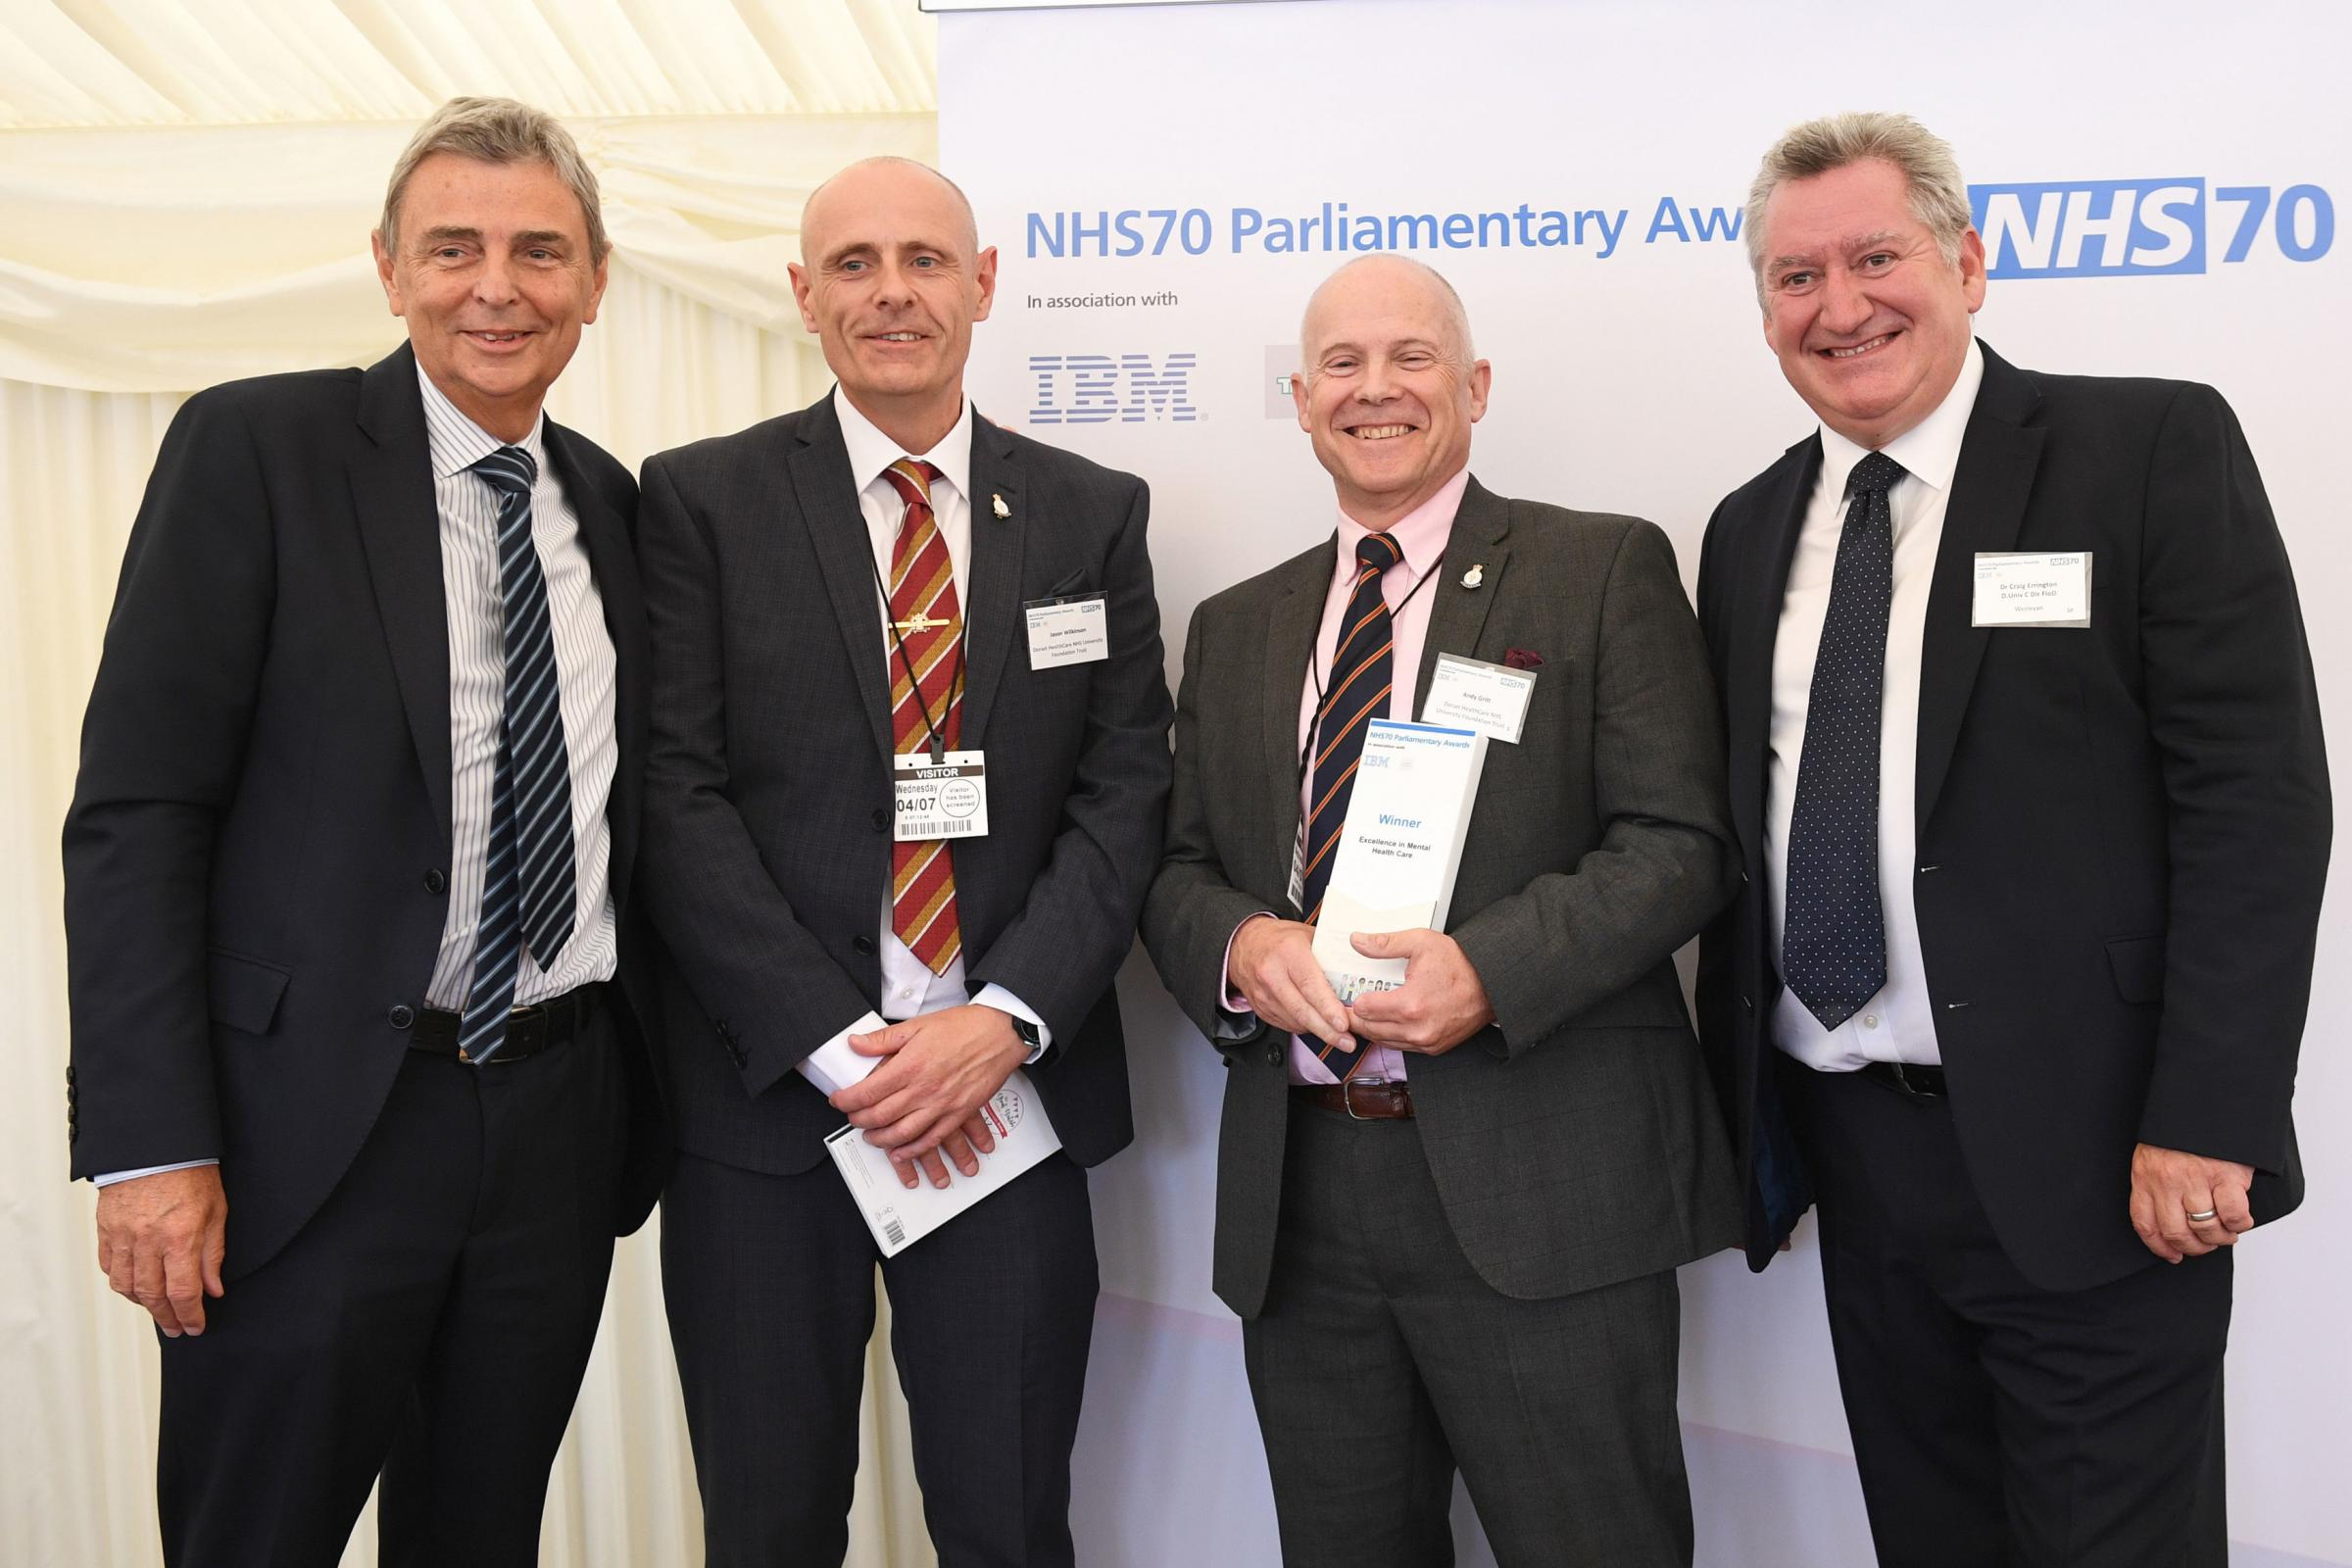 Jason Wilkinson (second left) and Andy Gritt (second right) of Dorset armed Forces Community Health and Wellbeing Project receive their Excellence in Mental Healthcare Award from UNISON General Secretary Dave Prentis (first left) and Dr Cr